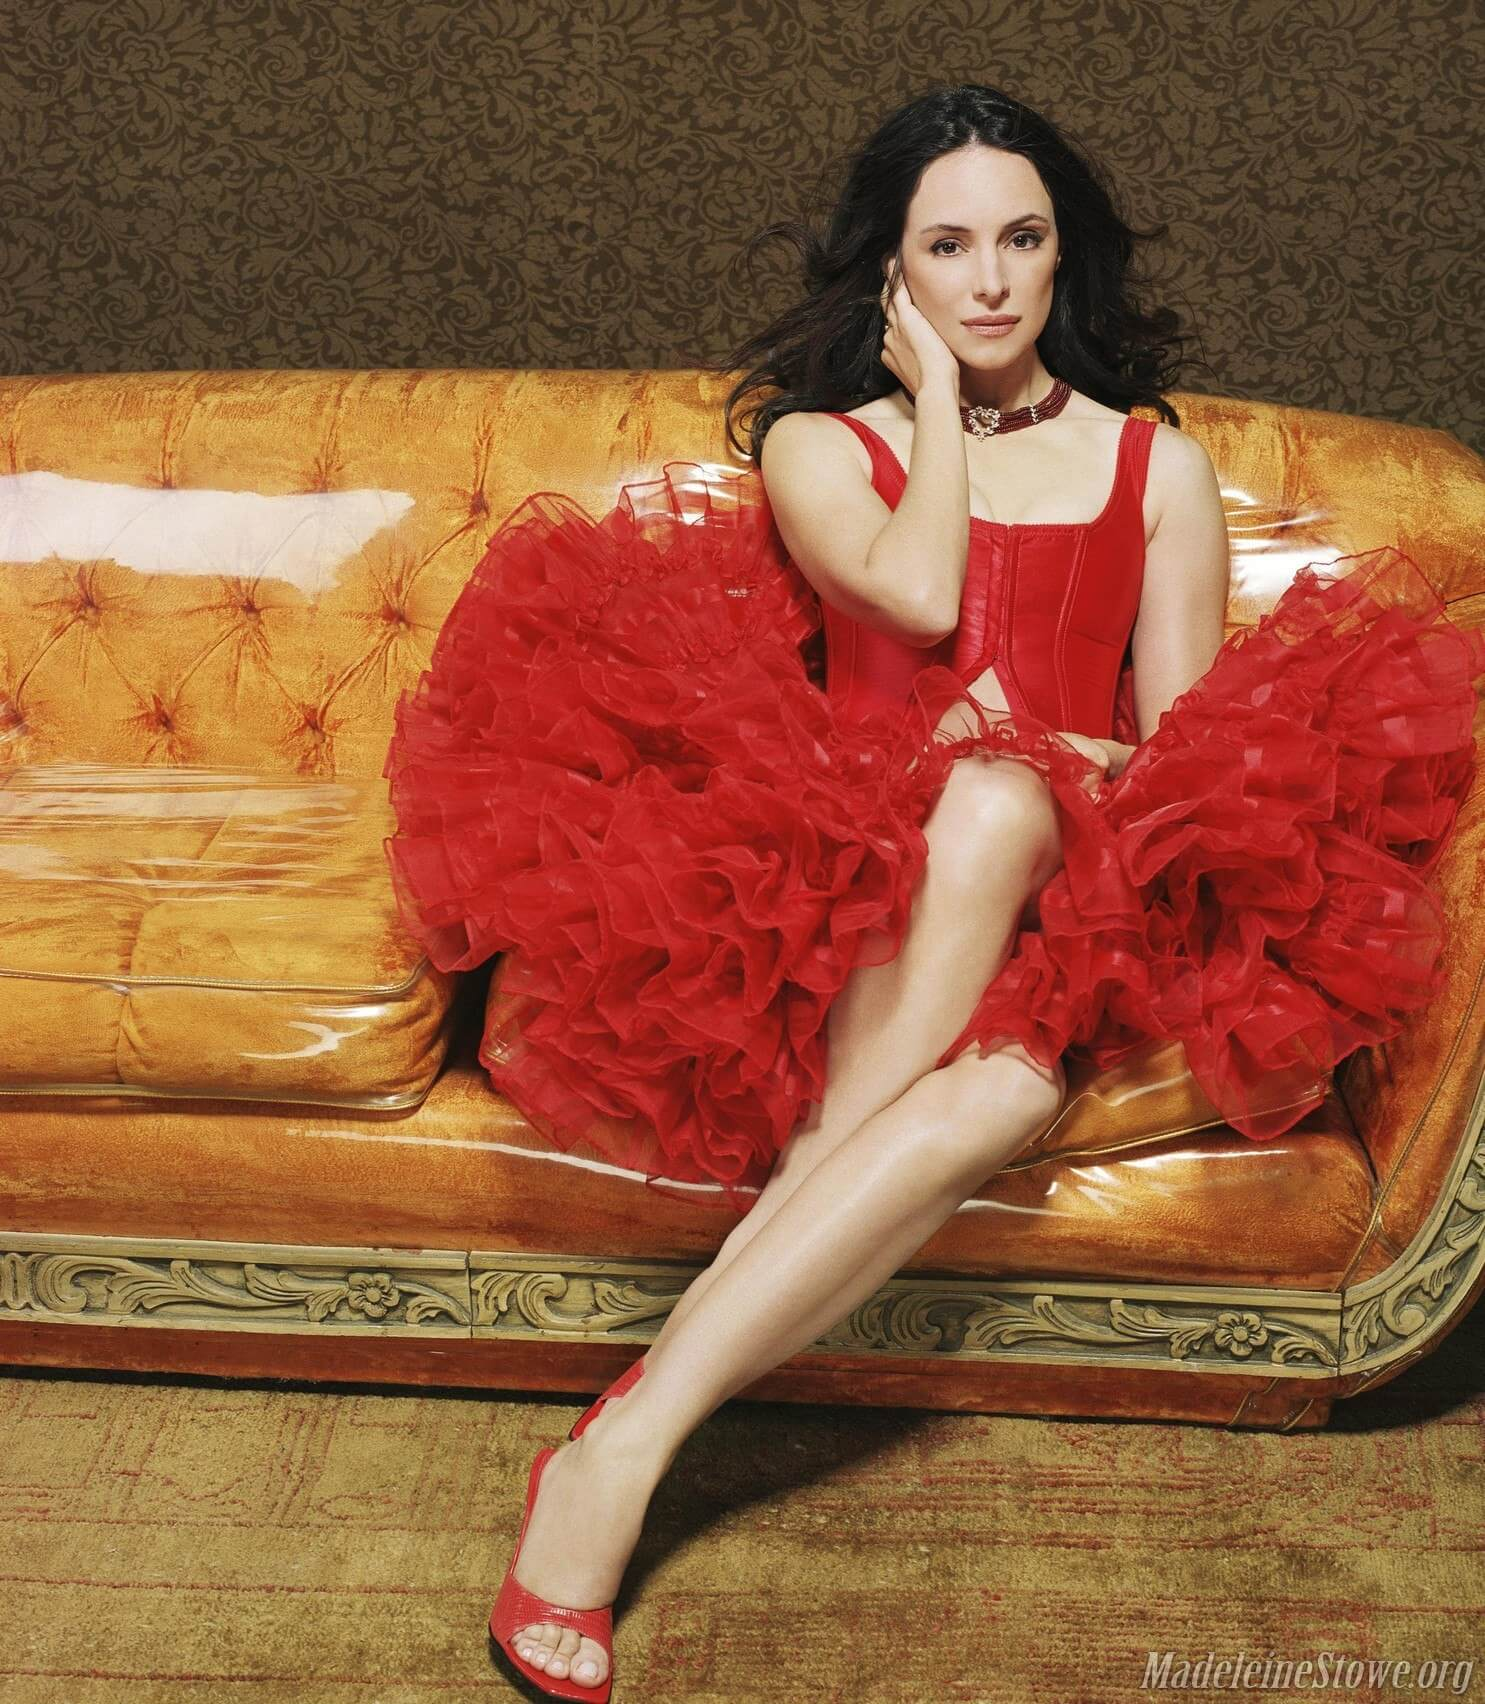 49 hottest photos of Madeleine Stowe in bikini - hell of a